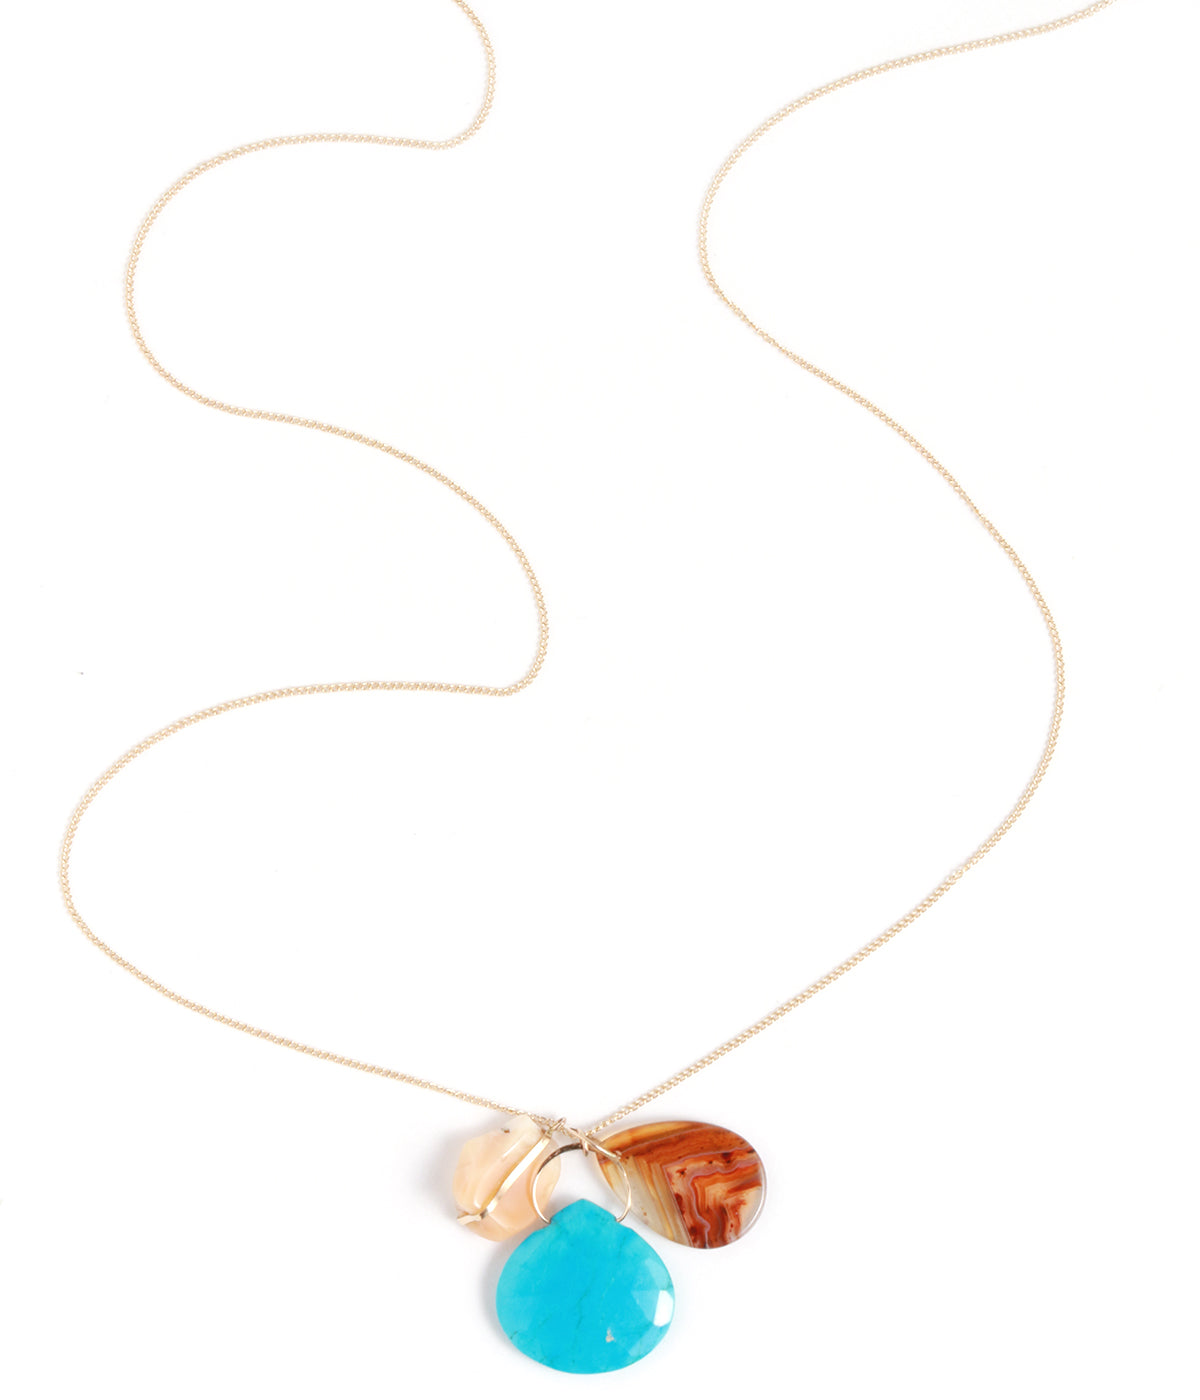 Opal, Turquoise, and Agate Pendant Necklace - Melissa Joy Manning Jewelry